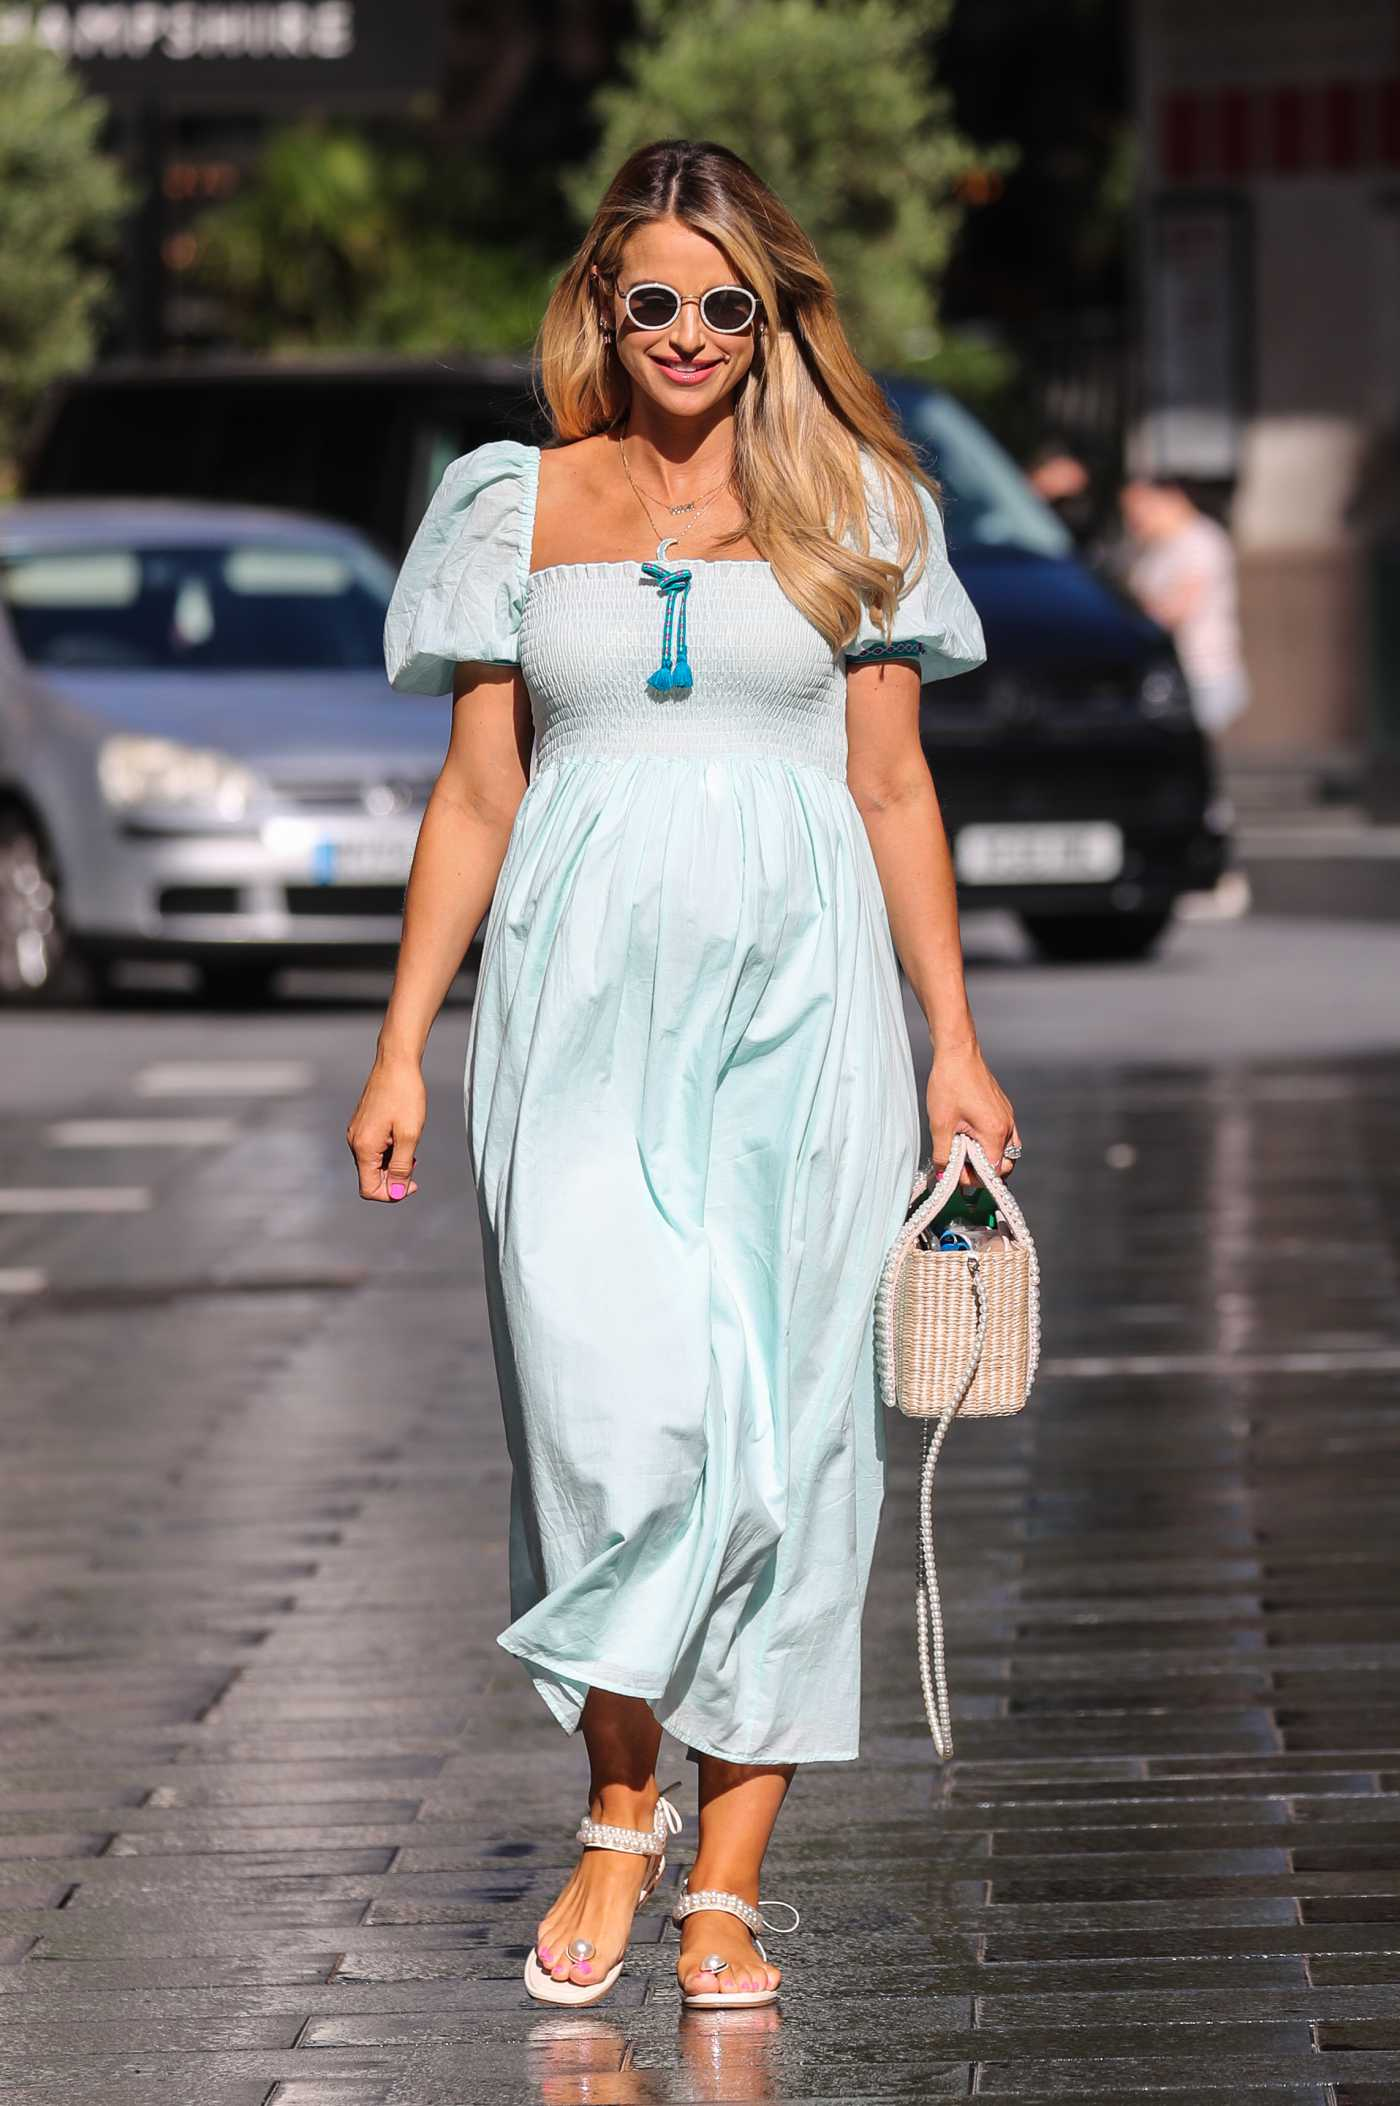 Vogue Williams in a Turquoise Maxi Dress Leaves the Heart Radio in London 07/12/2020